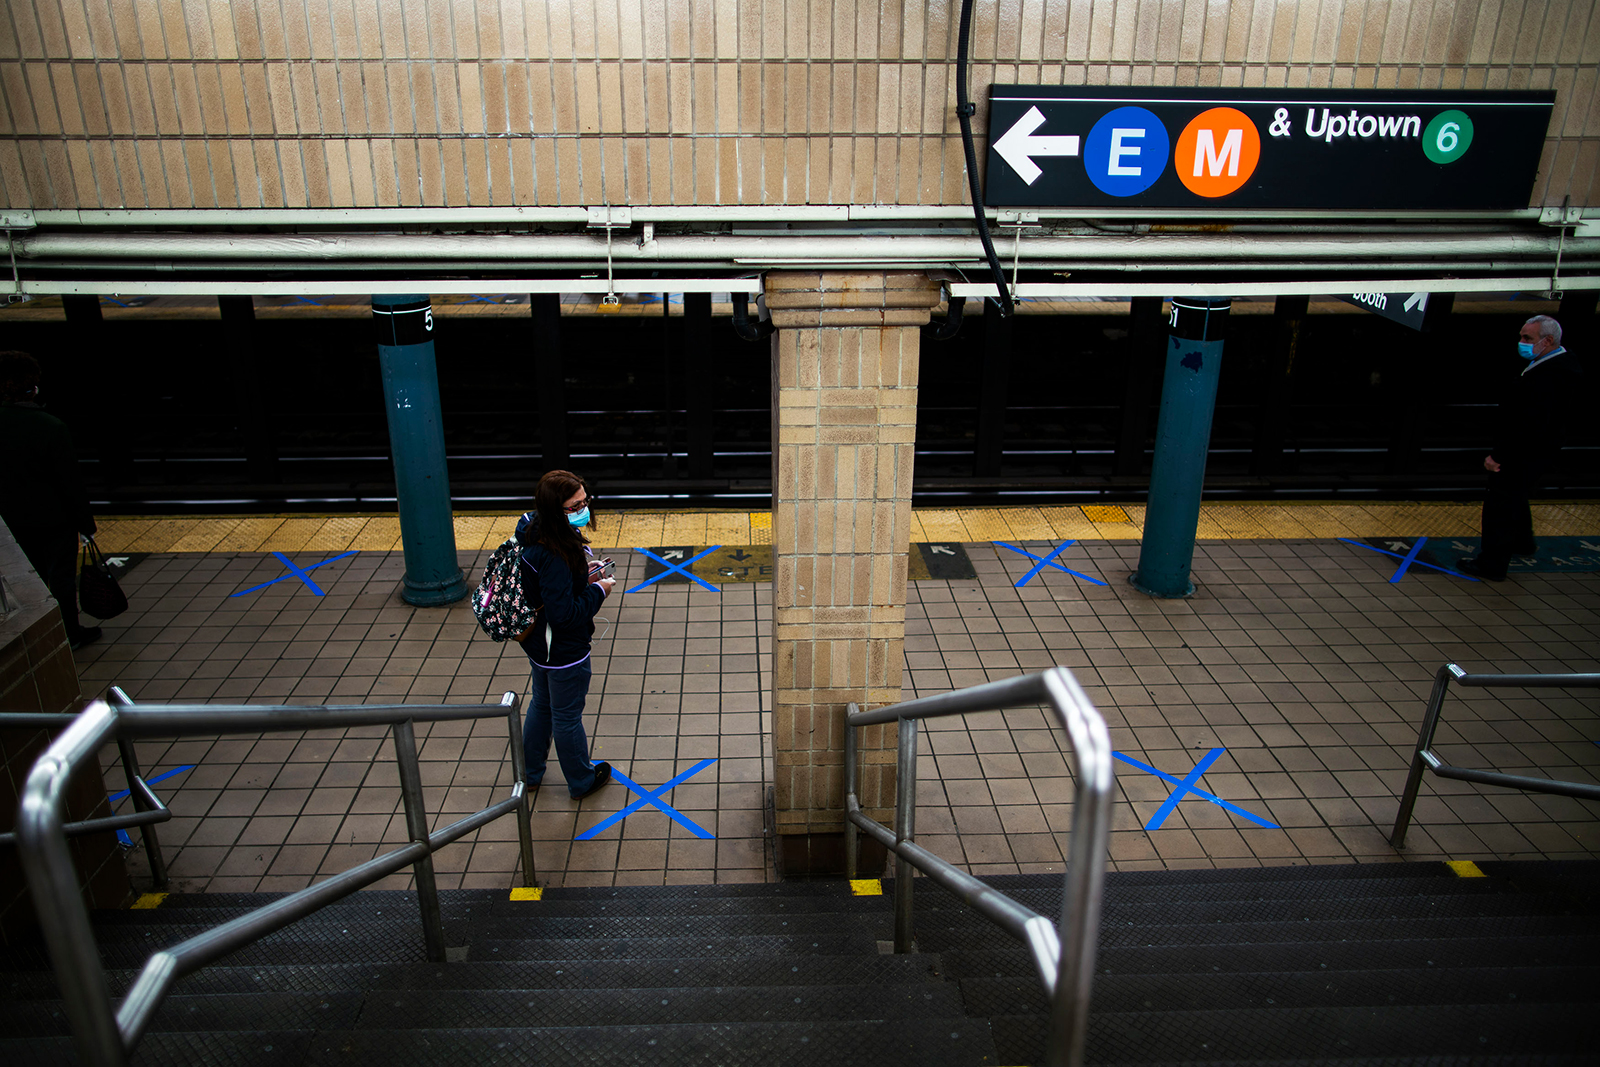 People wearing protective face masks practice social distancing as they wait on marked spots at a subway station during the Covid-19 pandemic on May 12, in New York City.